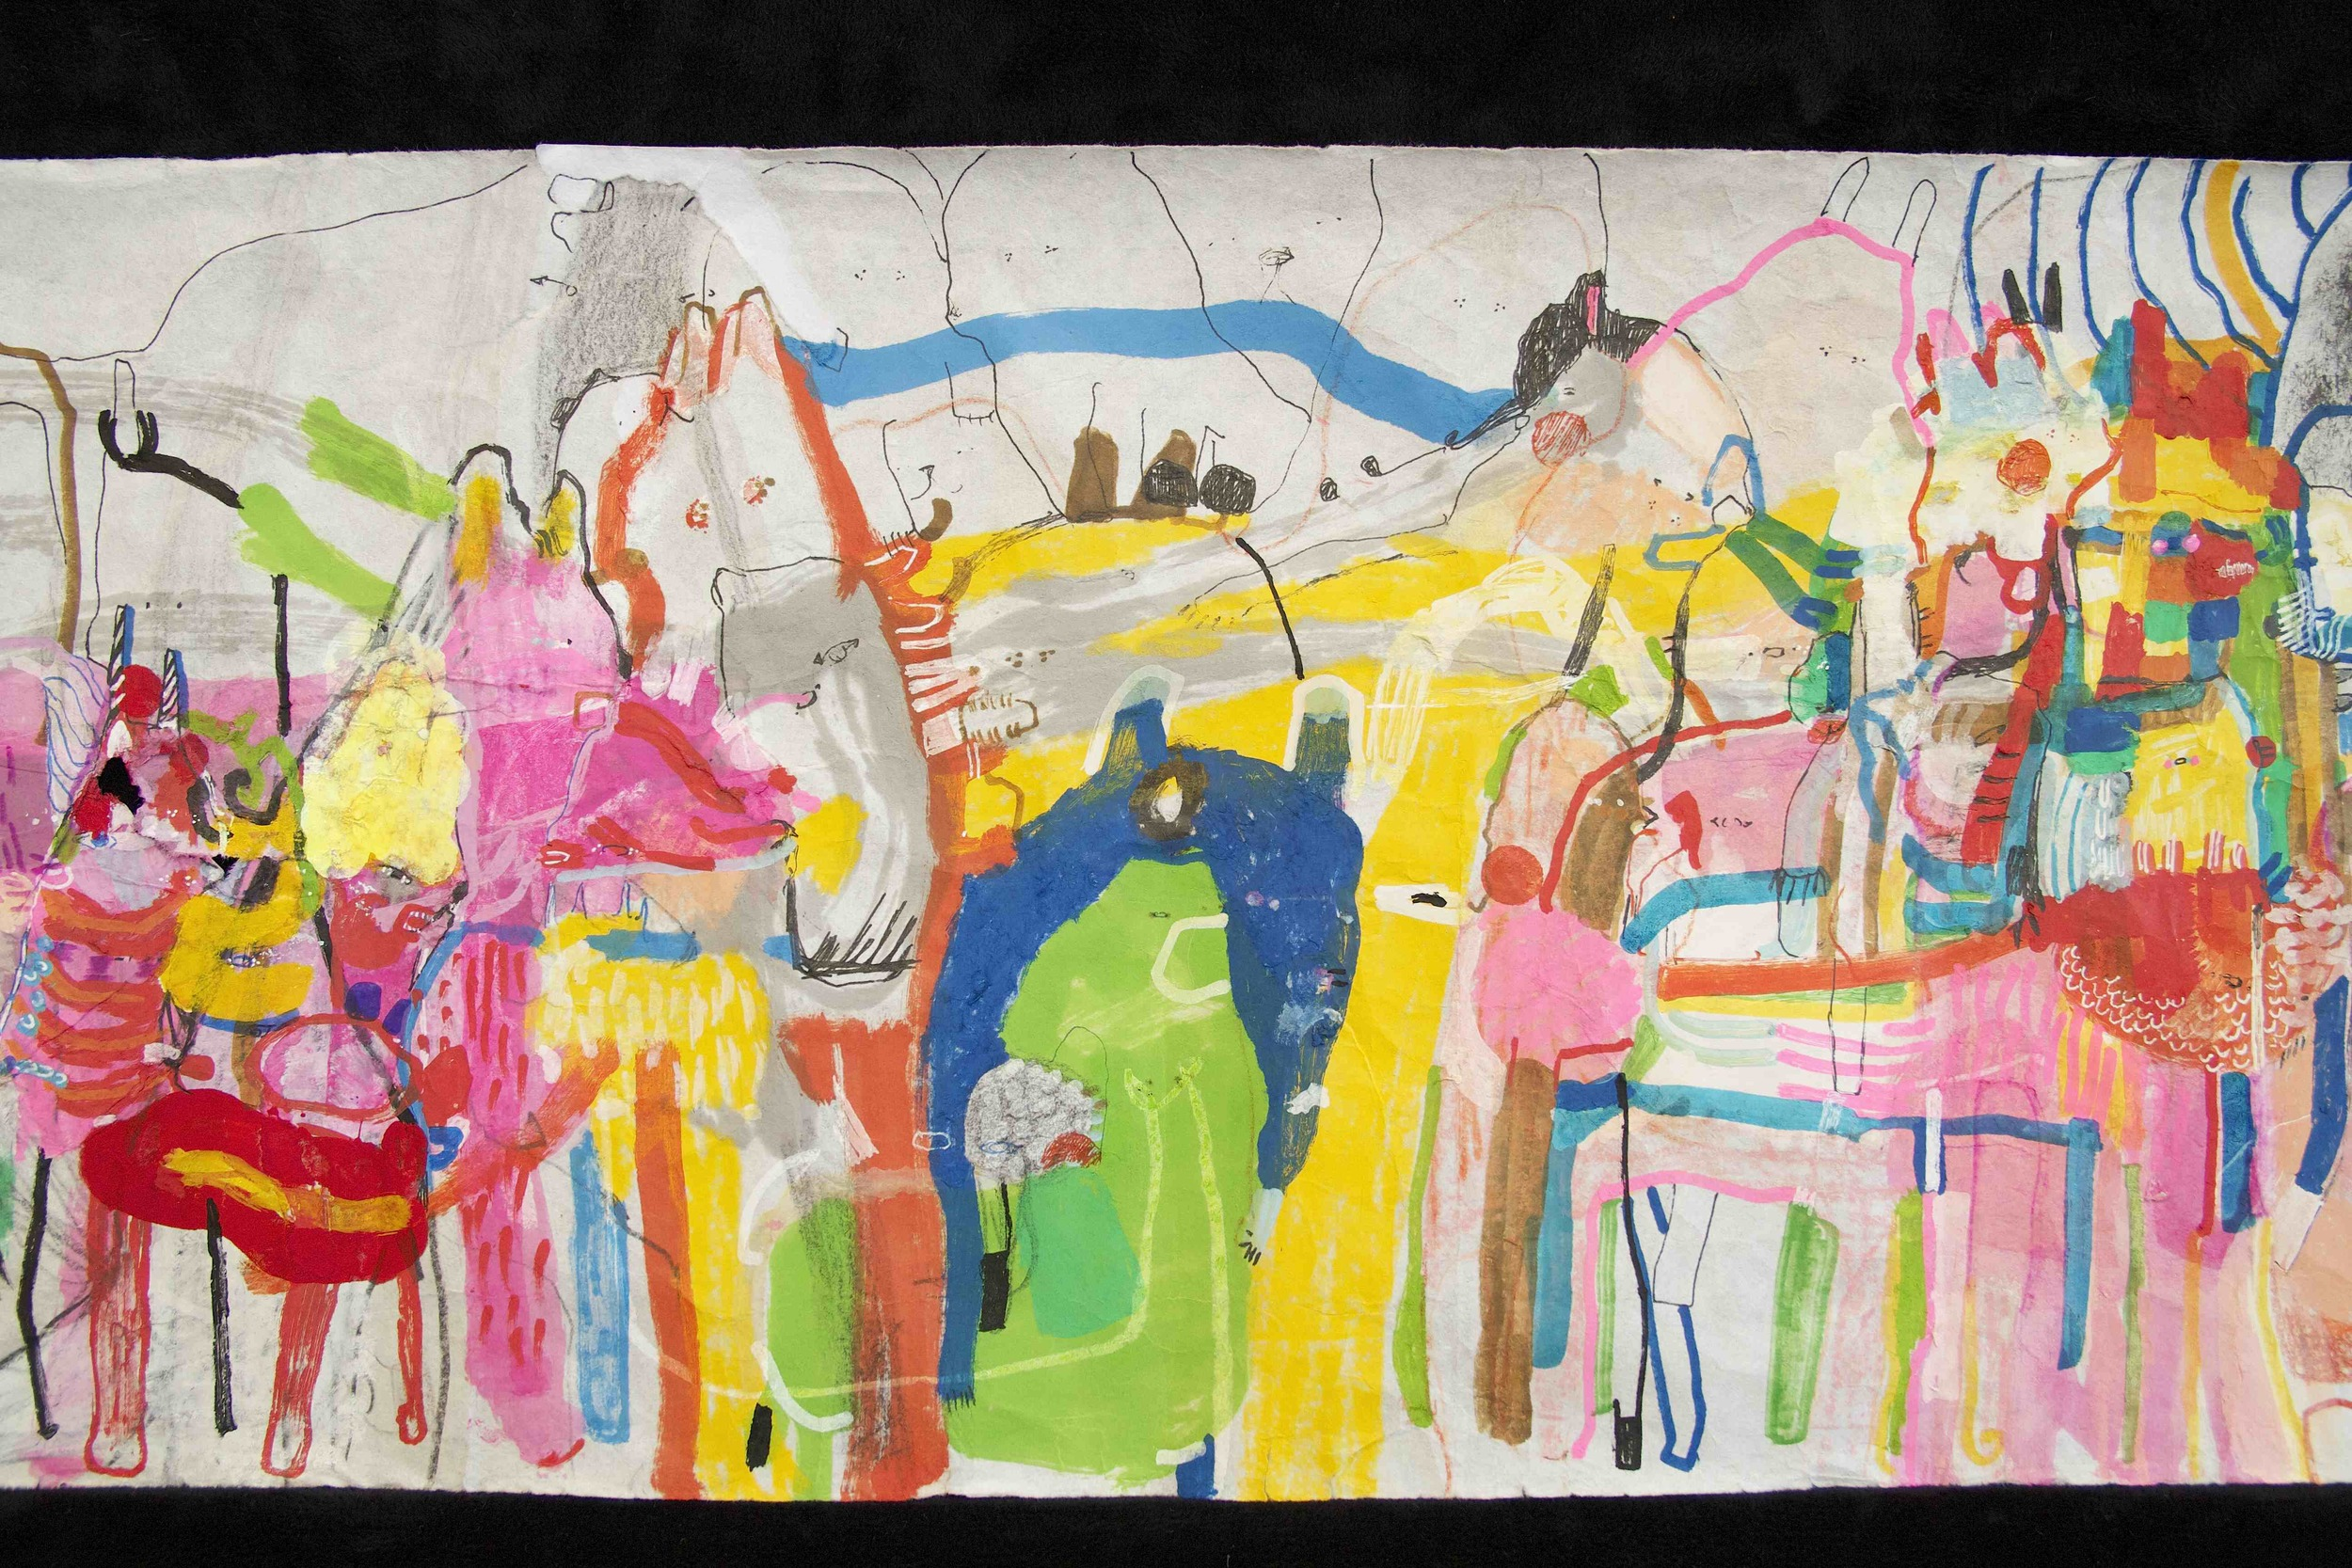 """[Detail no 37]  """"The Wind atop The Wood -Winds of Mount Meru Tangling Threads of Rainbow atop the Wood -Scroll 8""""   11 inches x 60 feet  ink, watercolor, gouache, dye, lost & found paper, crayon and graphite on mulberry paper scroll  2015"""